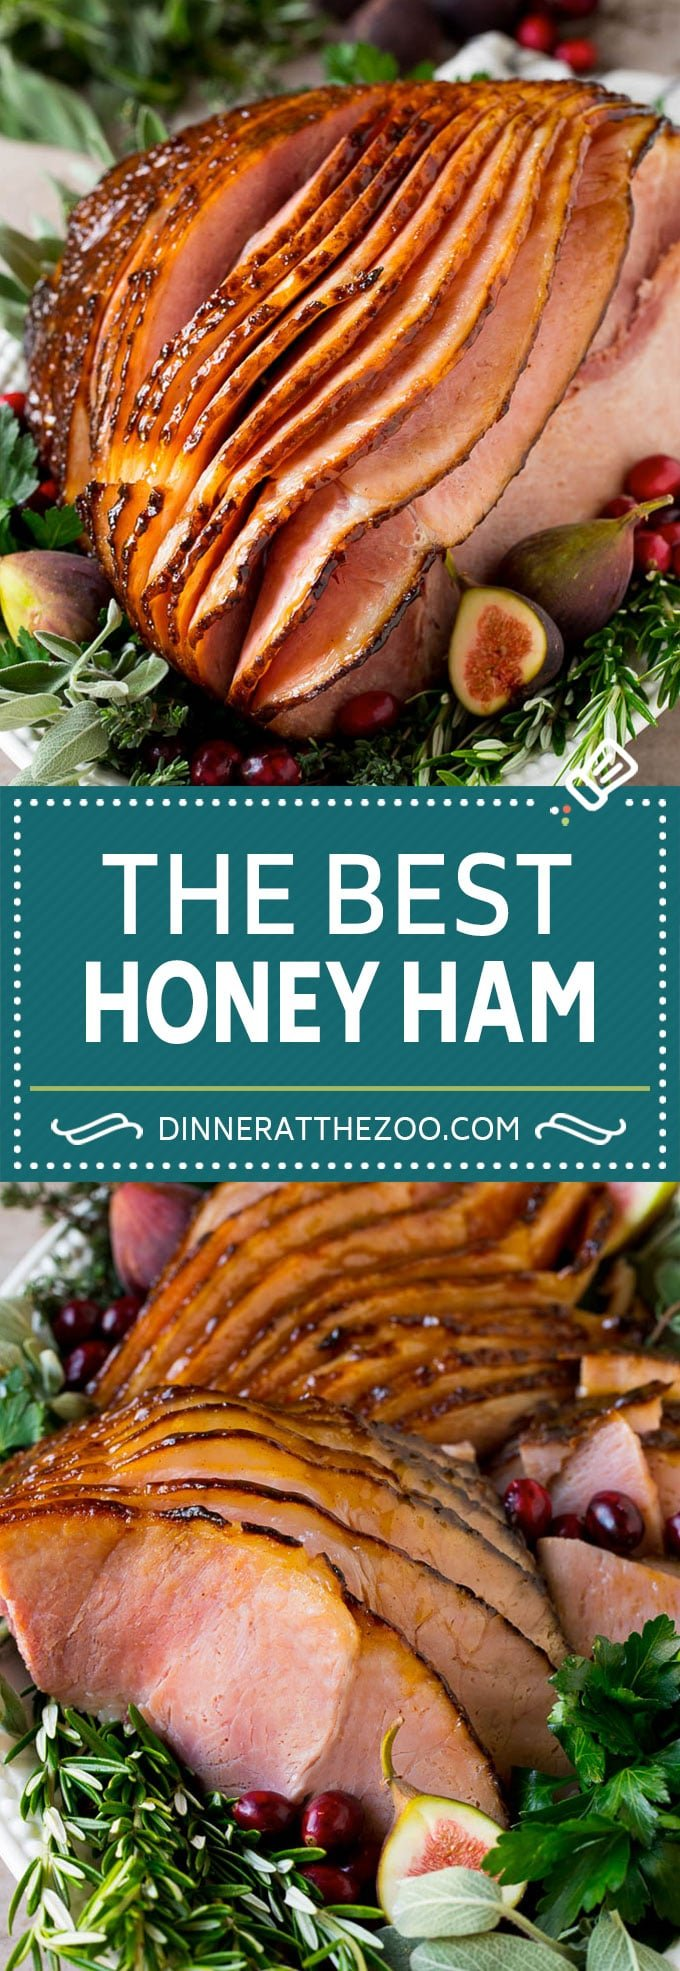 This honey glazed ham is a spiral cut ham, coated in honey and spices, then baked to golden brown perfection.